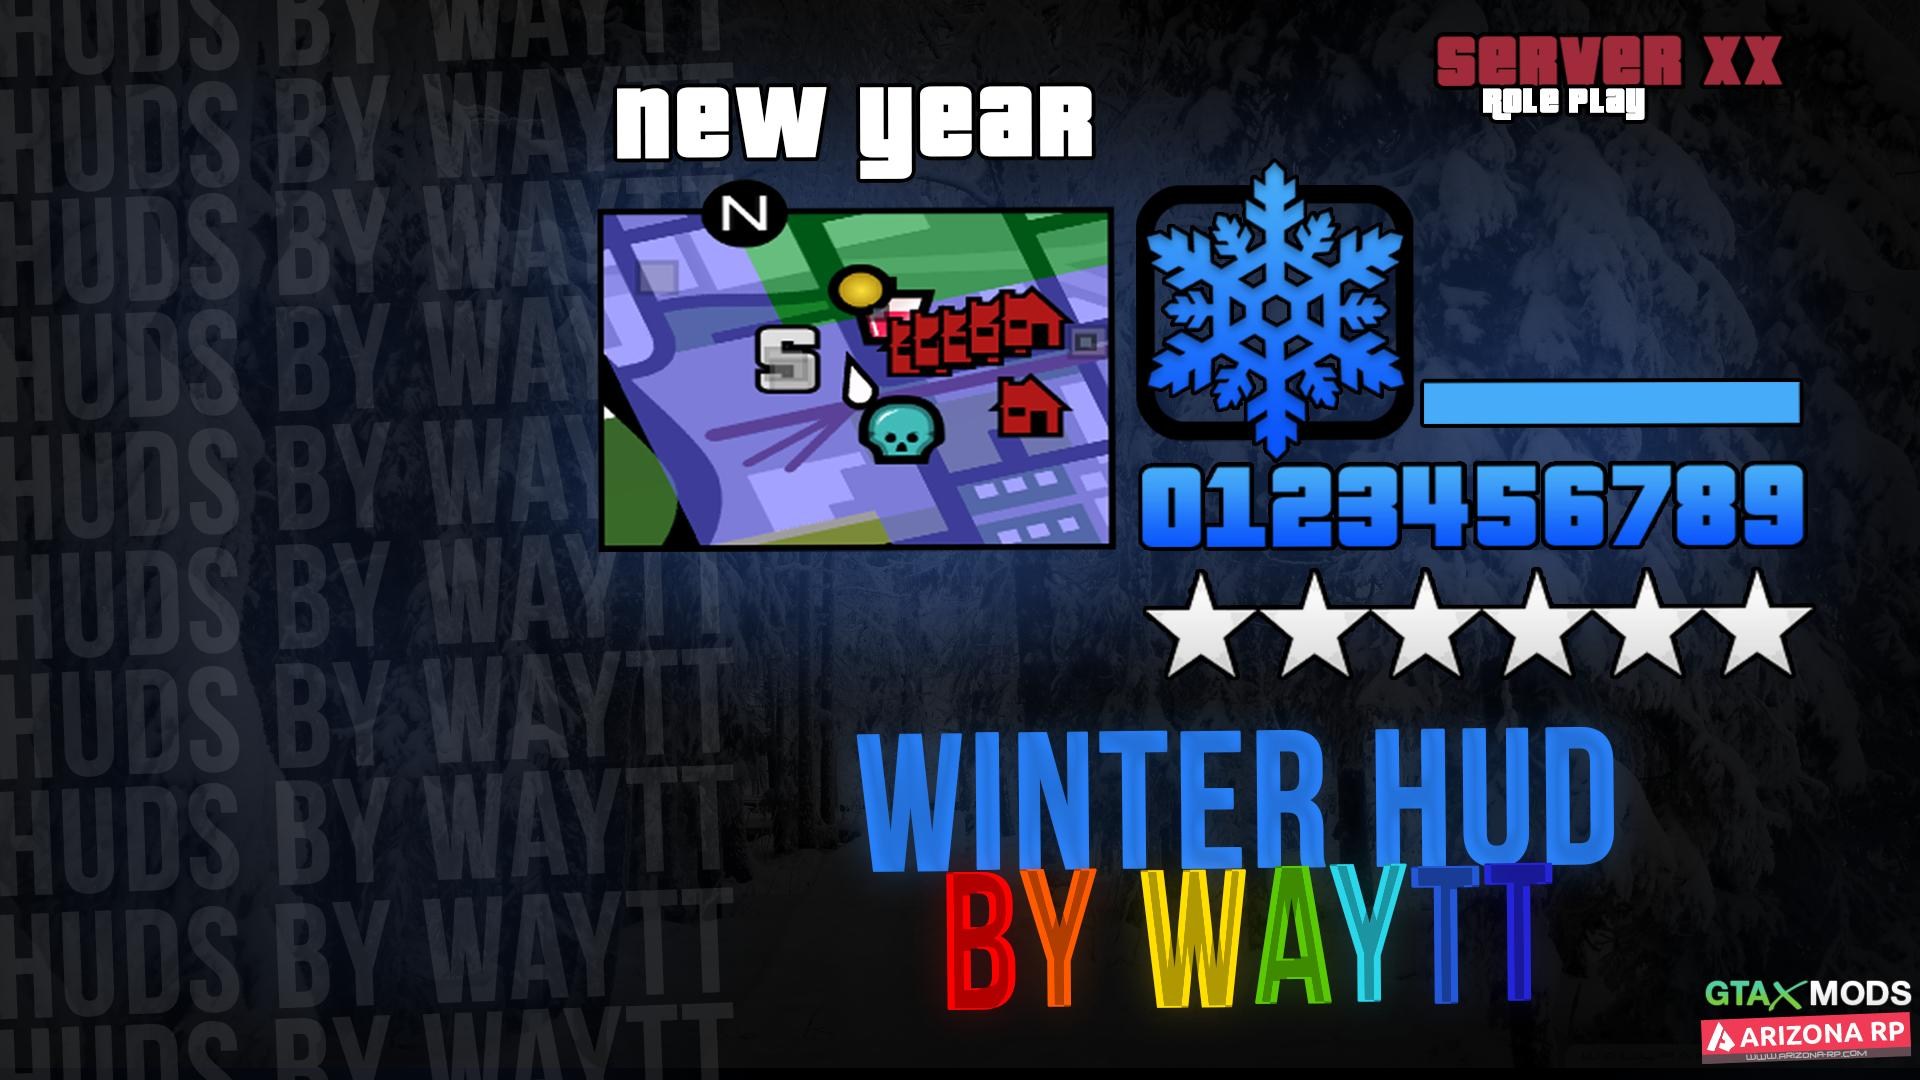 Winter hud by waytt